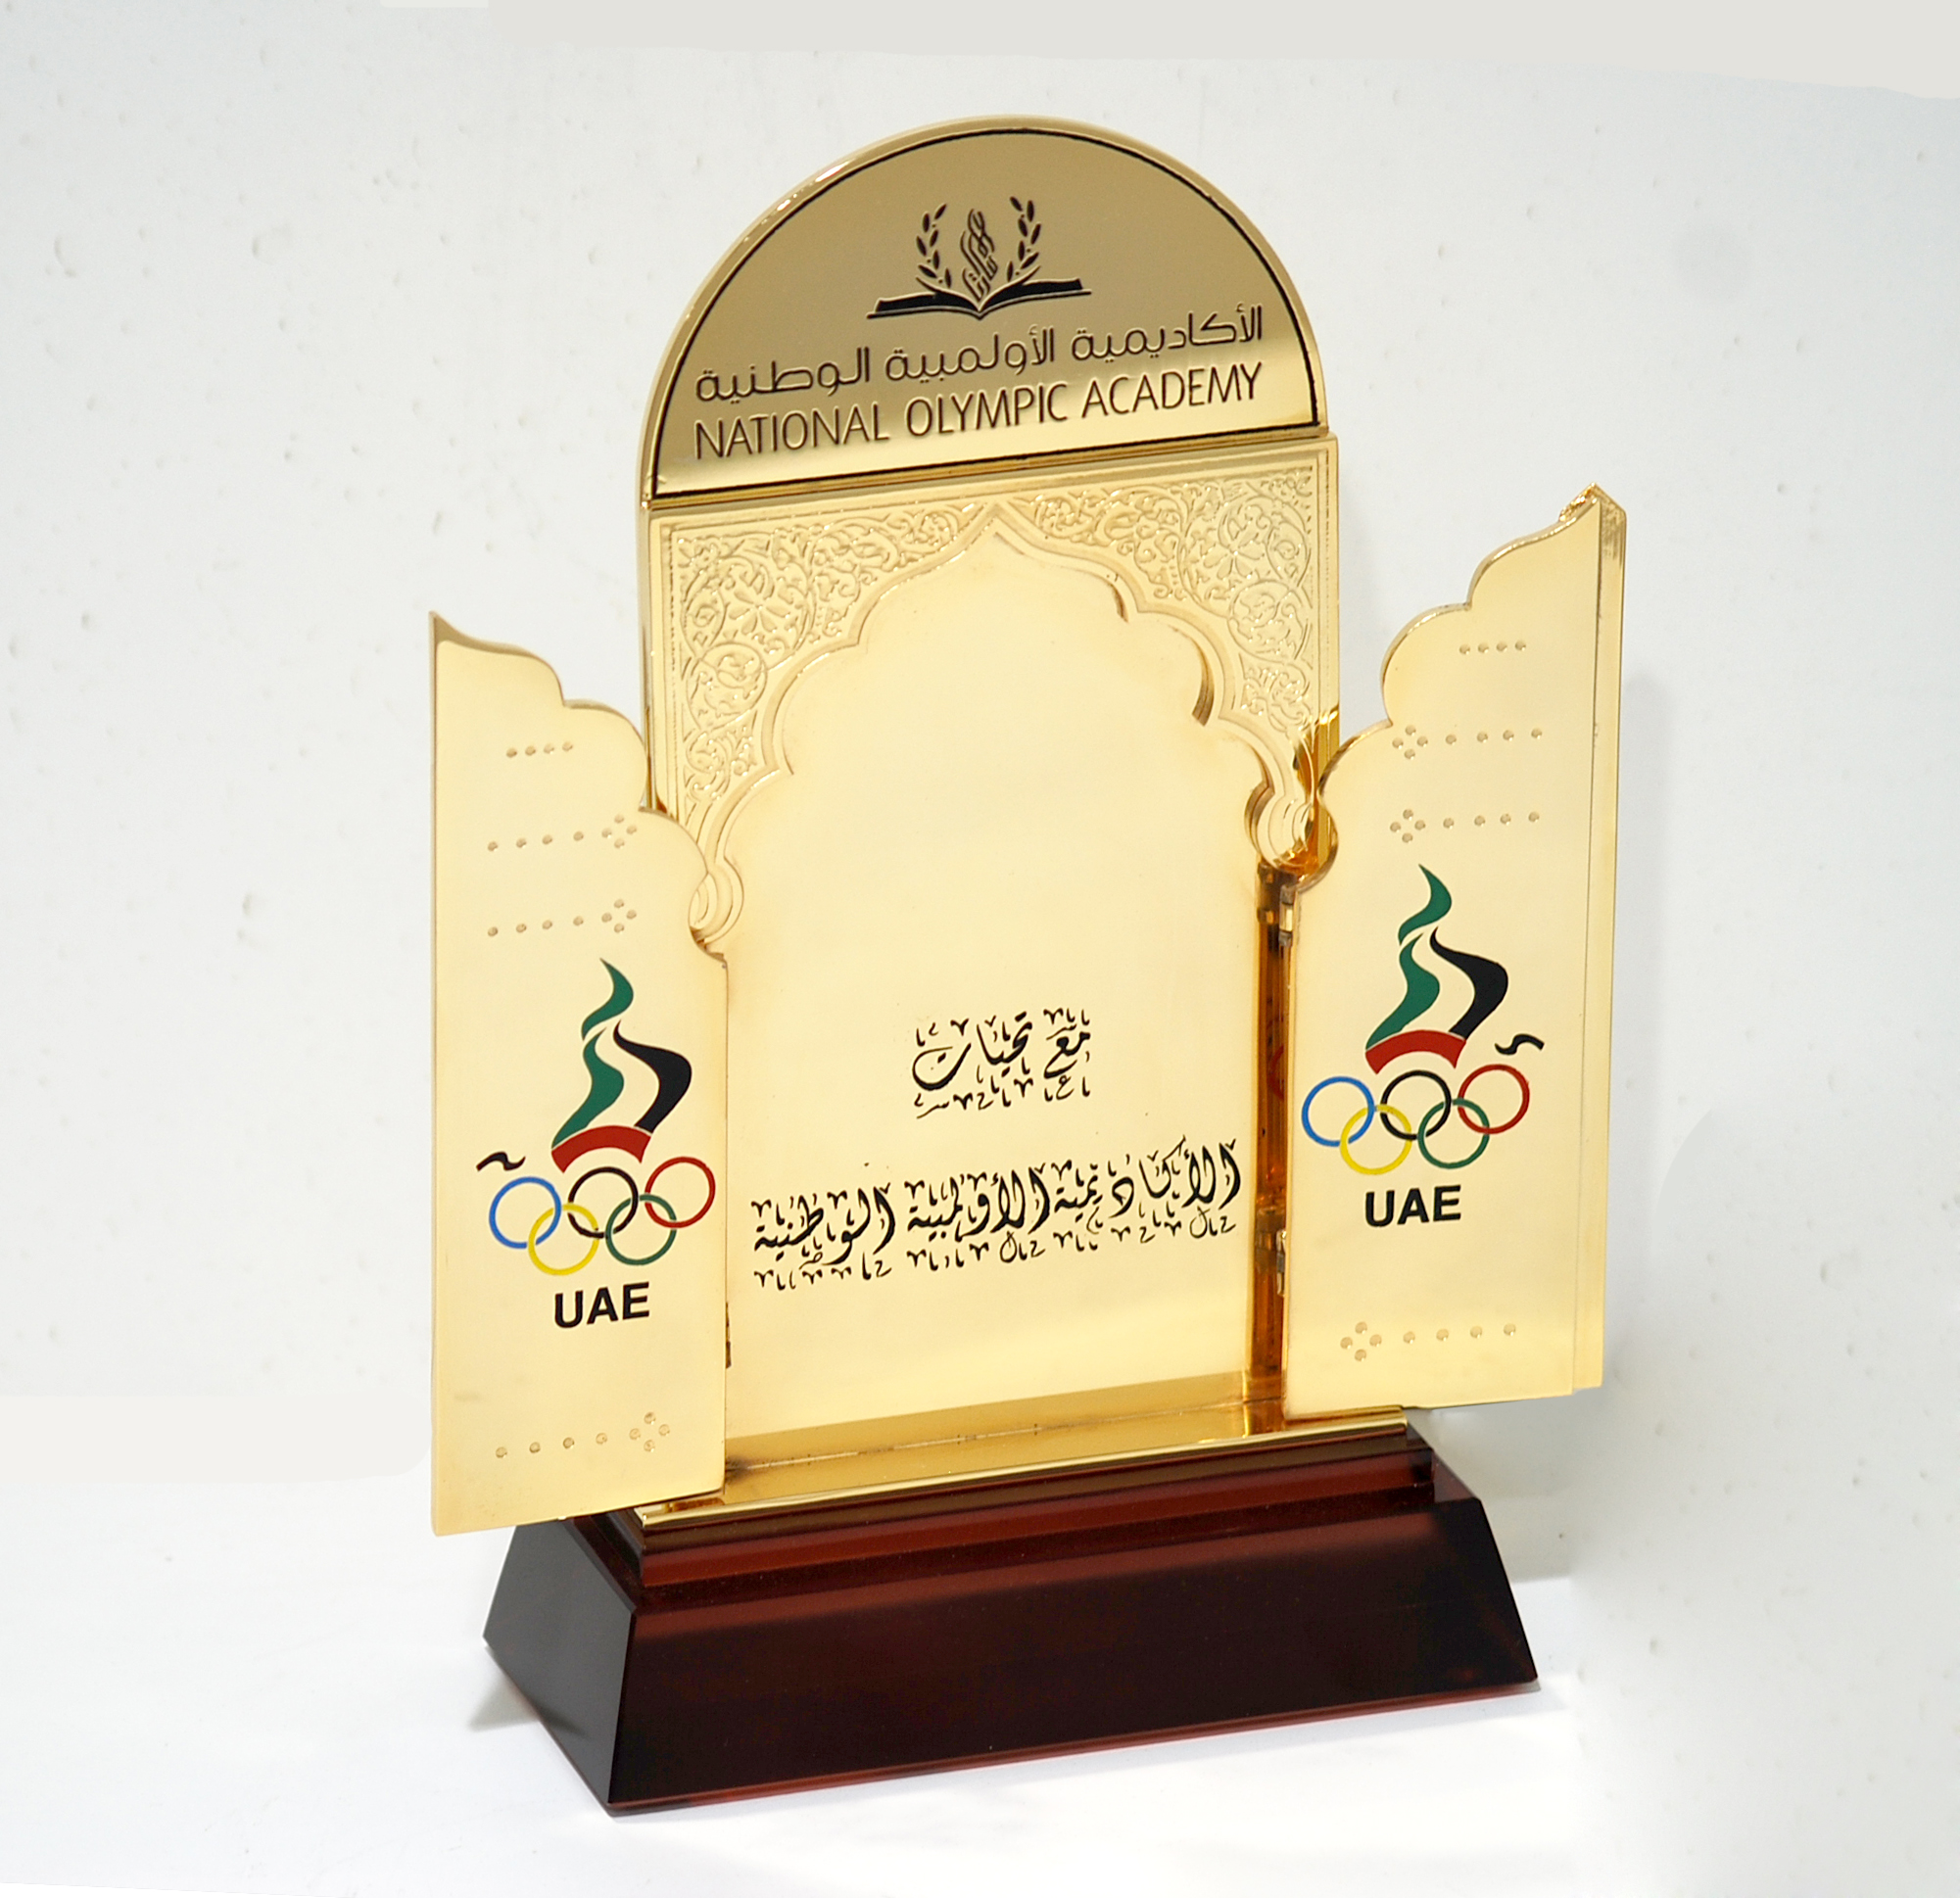 NATIONAL OLYMPICS ACADEMY AWARD